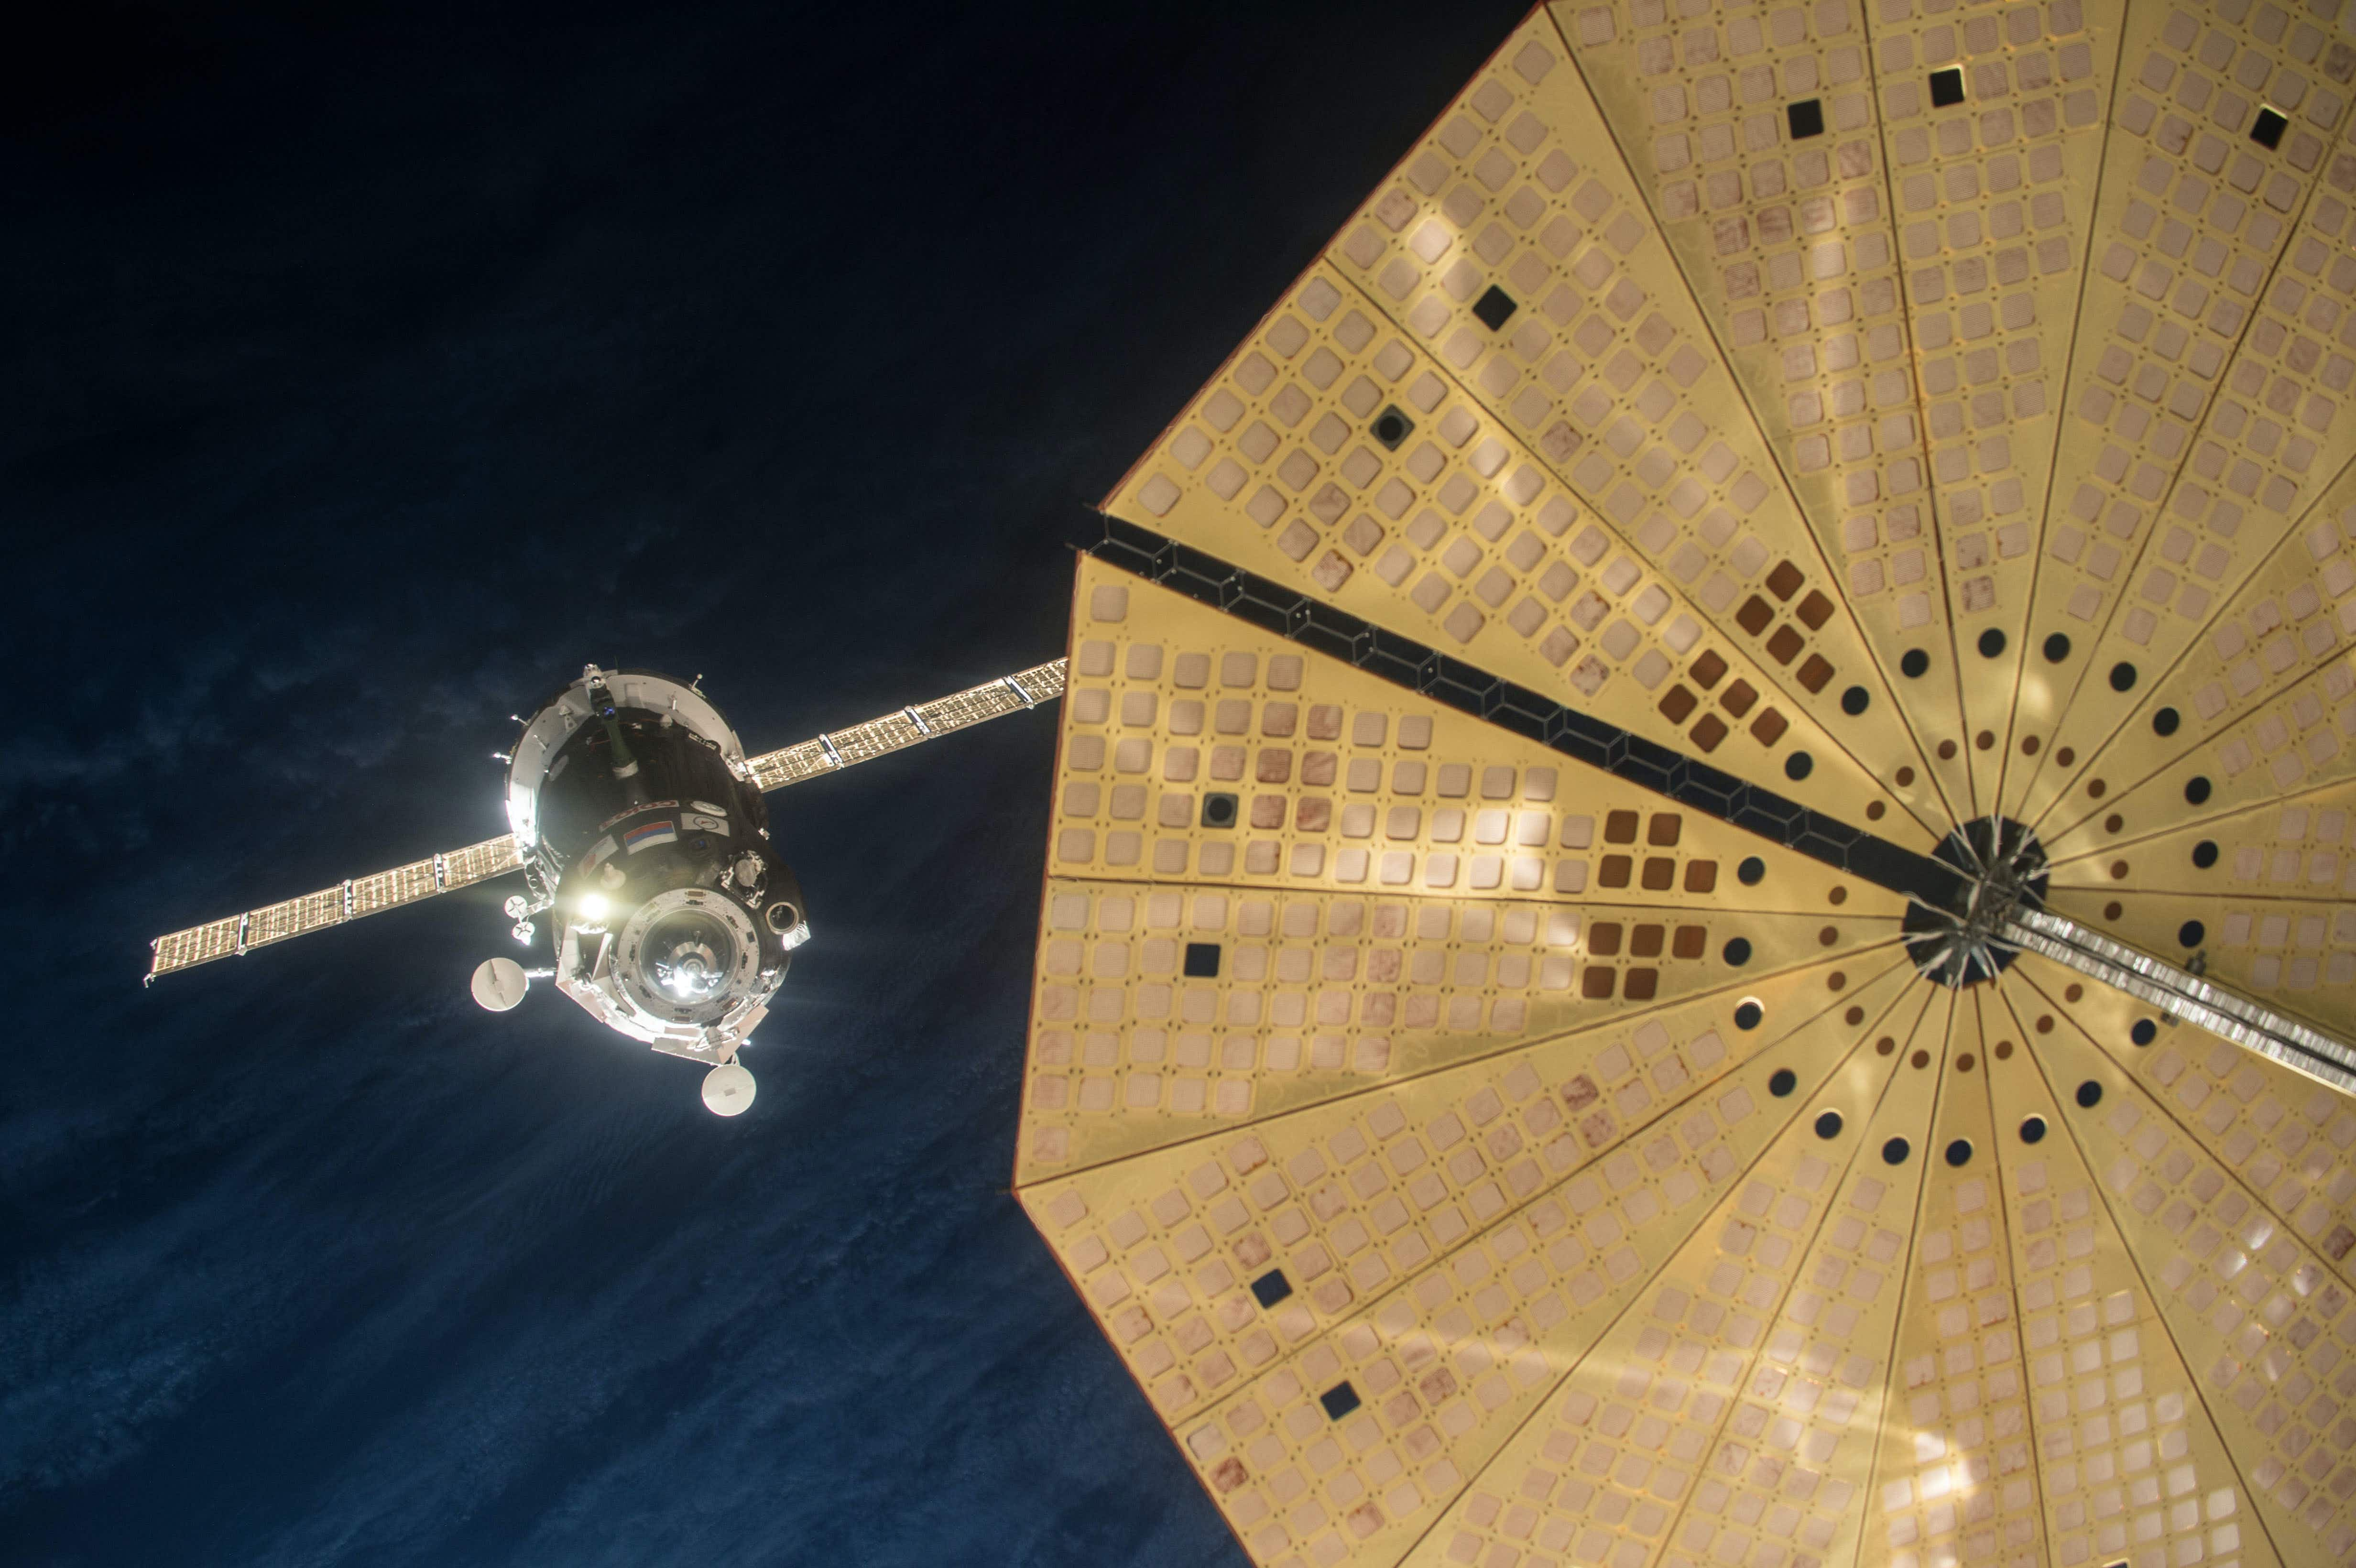 Russian Soyuz ship looking for 9 space tourists to fly to the moon